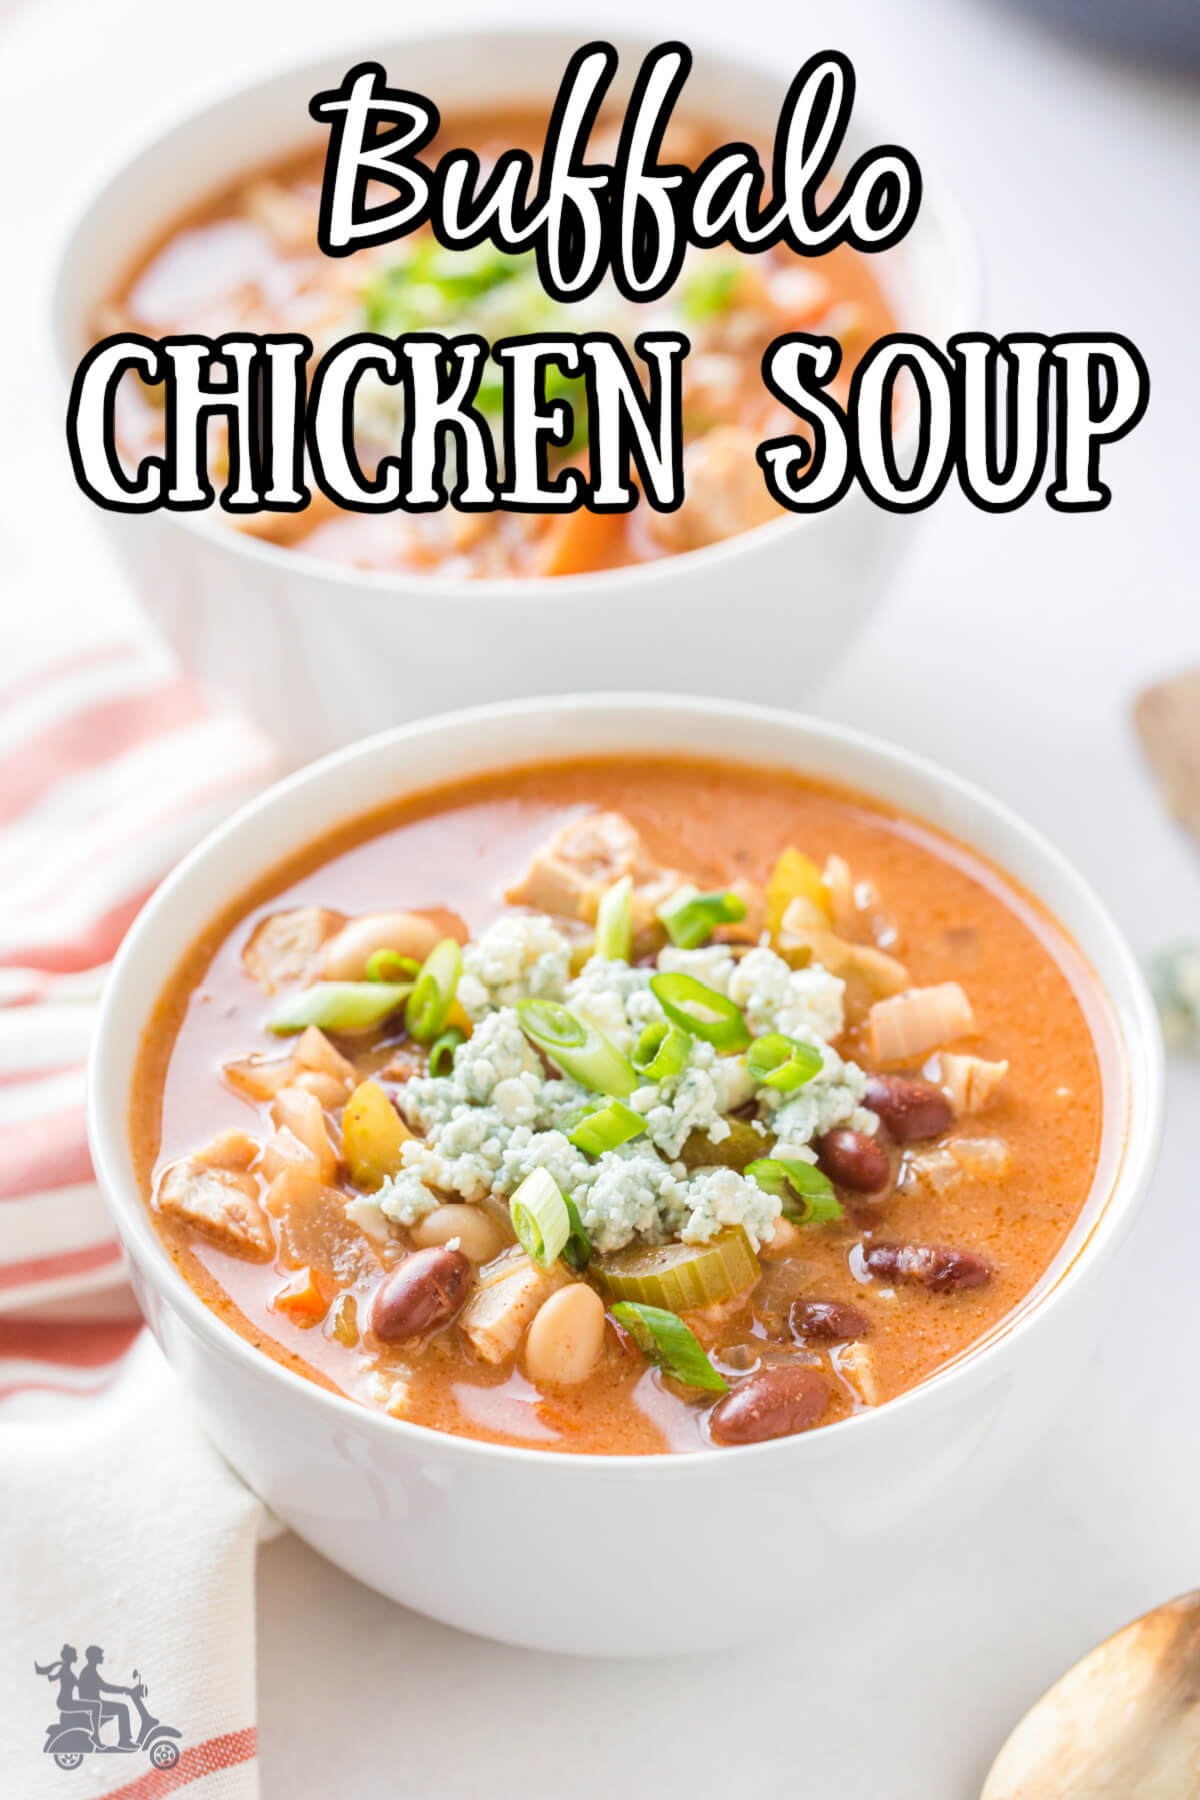 Two white bowls filled with Buffalo Chicken soup and garnished with bleu cheese and green onions.